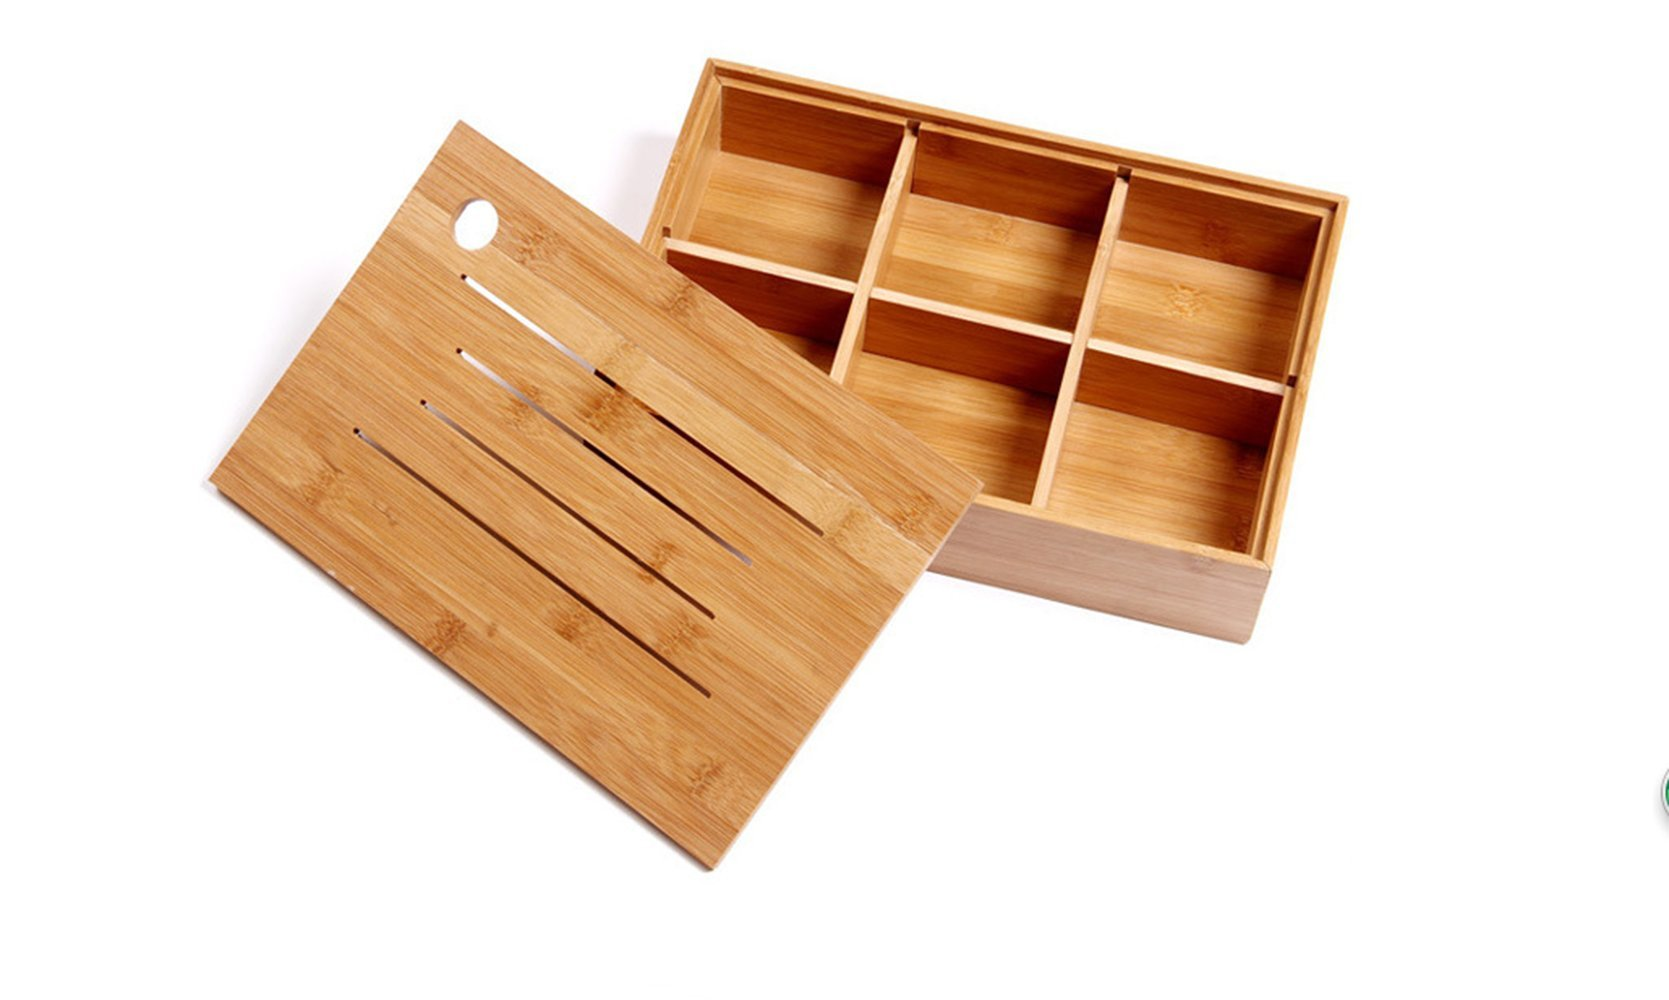 Wood Box,AOLOX Creative Bamboo Tea Bag Storage Box Multi Sectional Snack Serving Tray Set with Lid,Suitable for Tea Bag ,Dried Fruits, Nuts, Candies Holder and sock,Underwear-6 Compartments